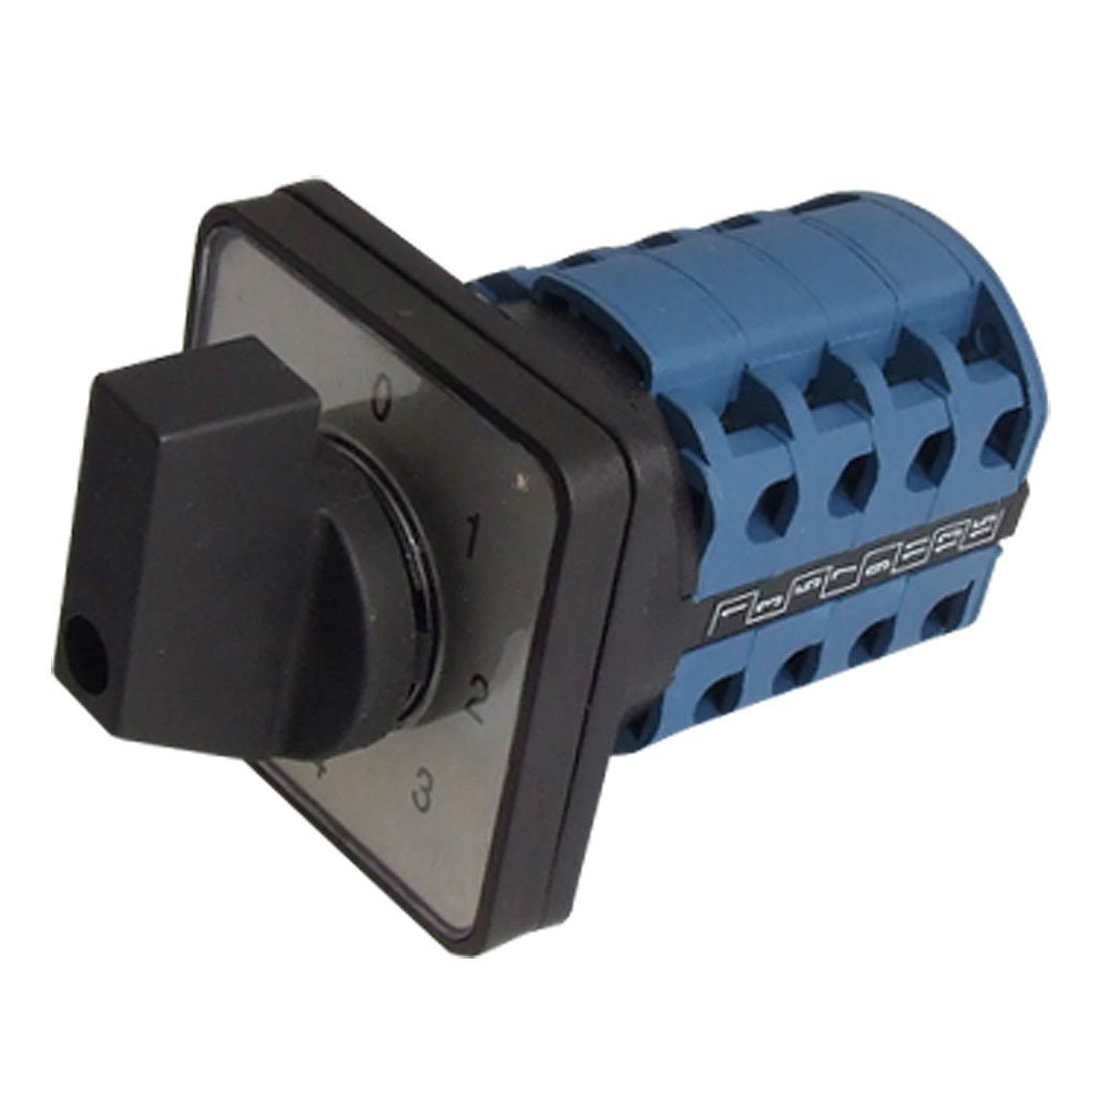 CNIM Hot LW28-20 Ui 380V 5 Positions 16 Terminals Changeover Cam Switch Black+Blue powder for ricoh imagio sp c 232 sf for savin sp c 231 sf for ricoh aficio c 242sf low capacity resetter resetterter powder